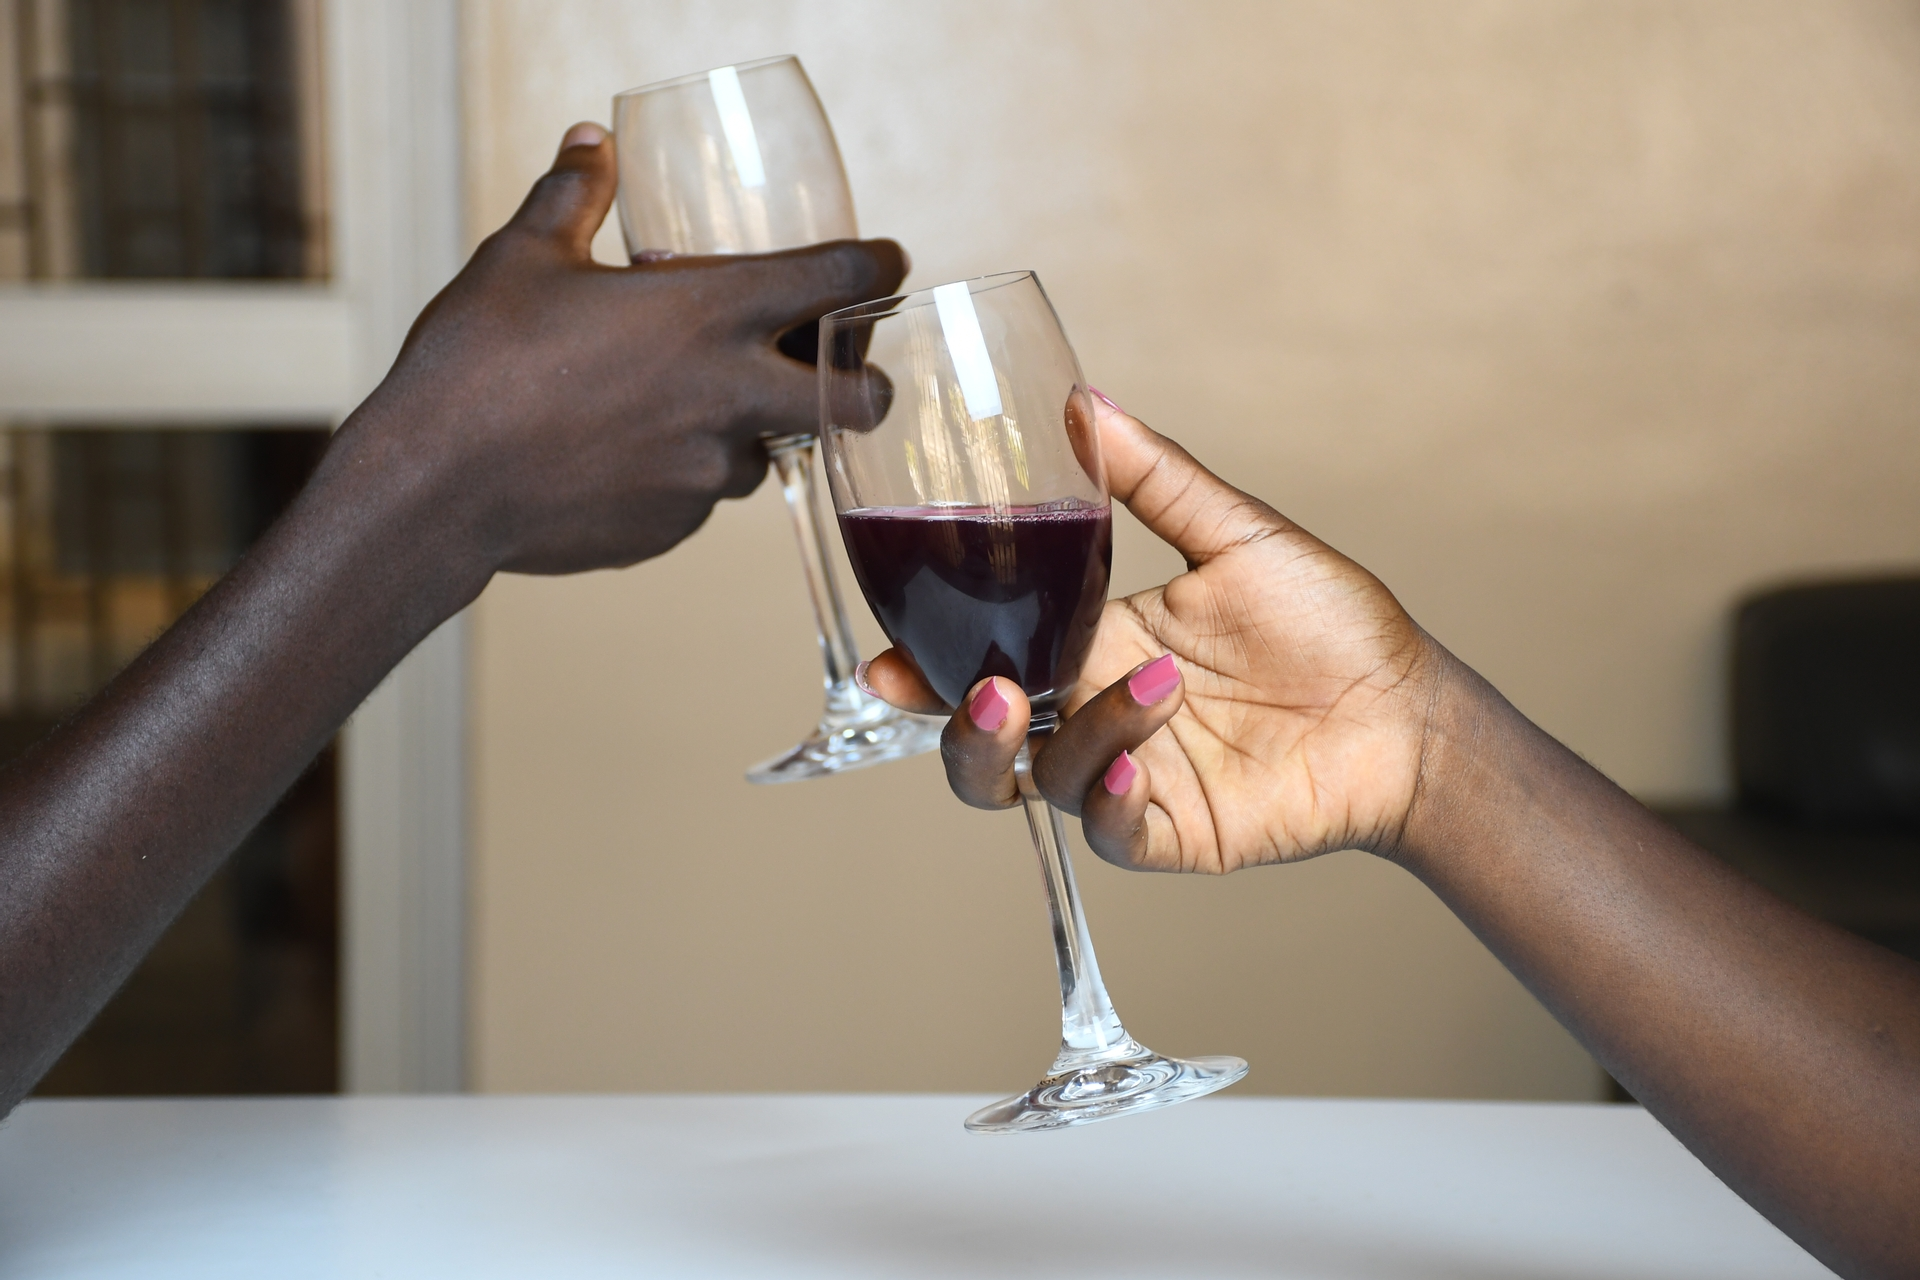 Africa, free, photo, toast, glass, wine, drink, celebration, date, couple, lovers, romance, party, dinner, diet, nutrition, taste, people